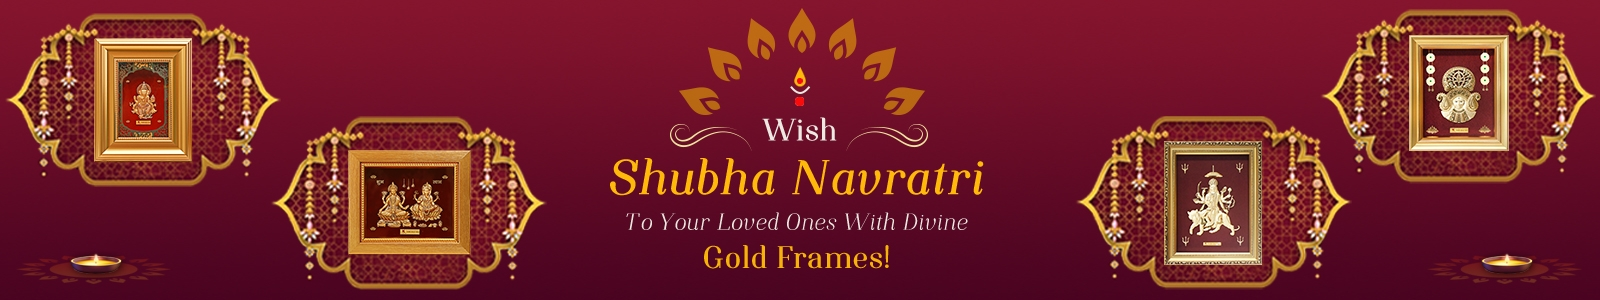 Wish Shubha Navratri To Your Loved Ones With Divine Gold Frames!